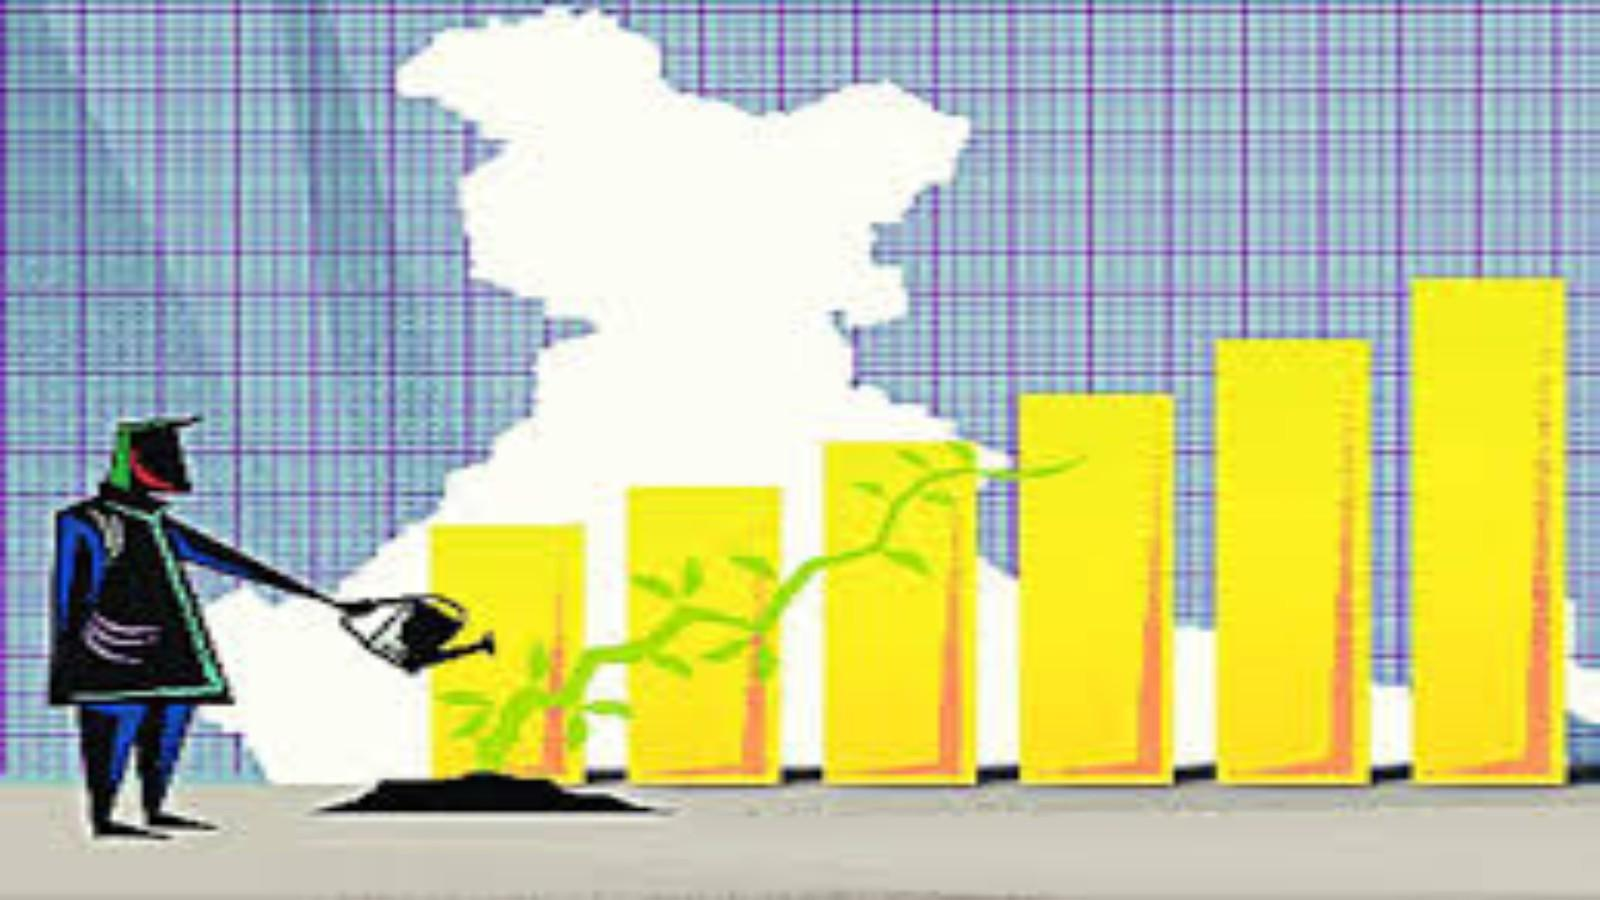 indias-economy-out-of-technical-recession-q3-gdp-shows-growth-at-0-4